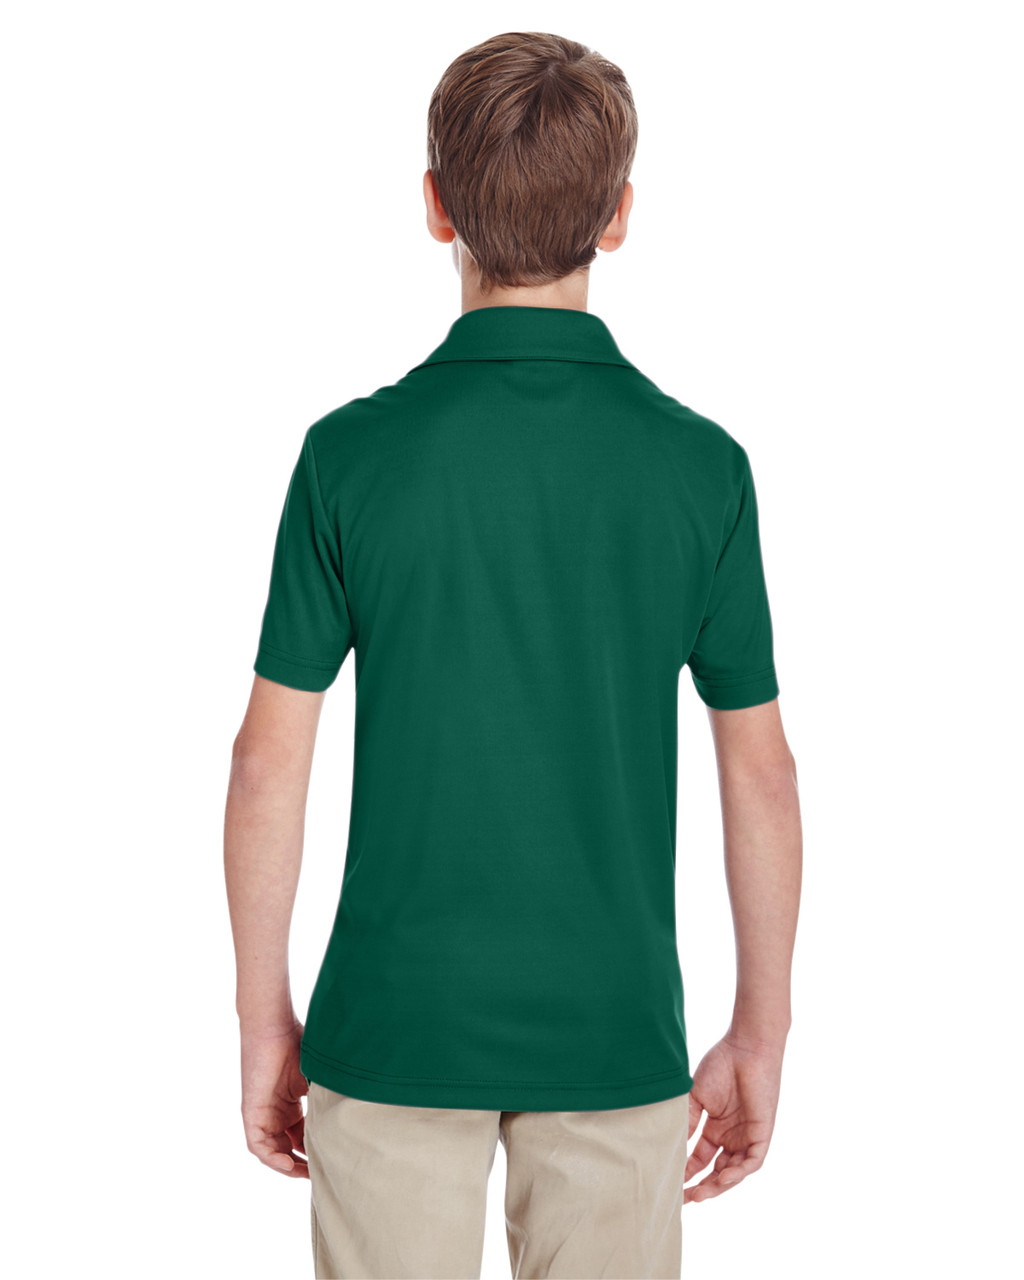 Sport Forest - TT51Y Team 365 Youth Zone Performance Polo Shirt